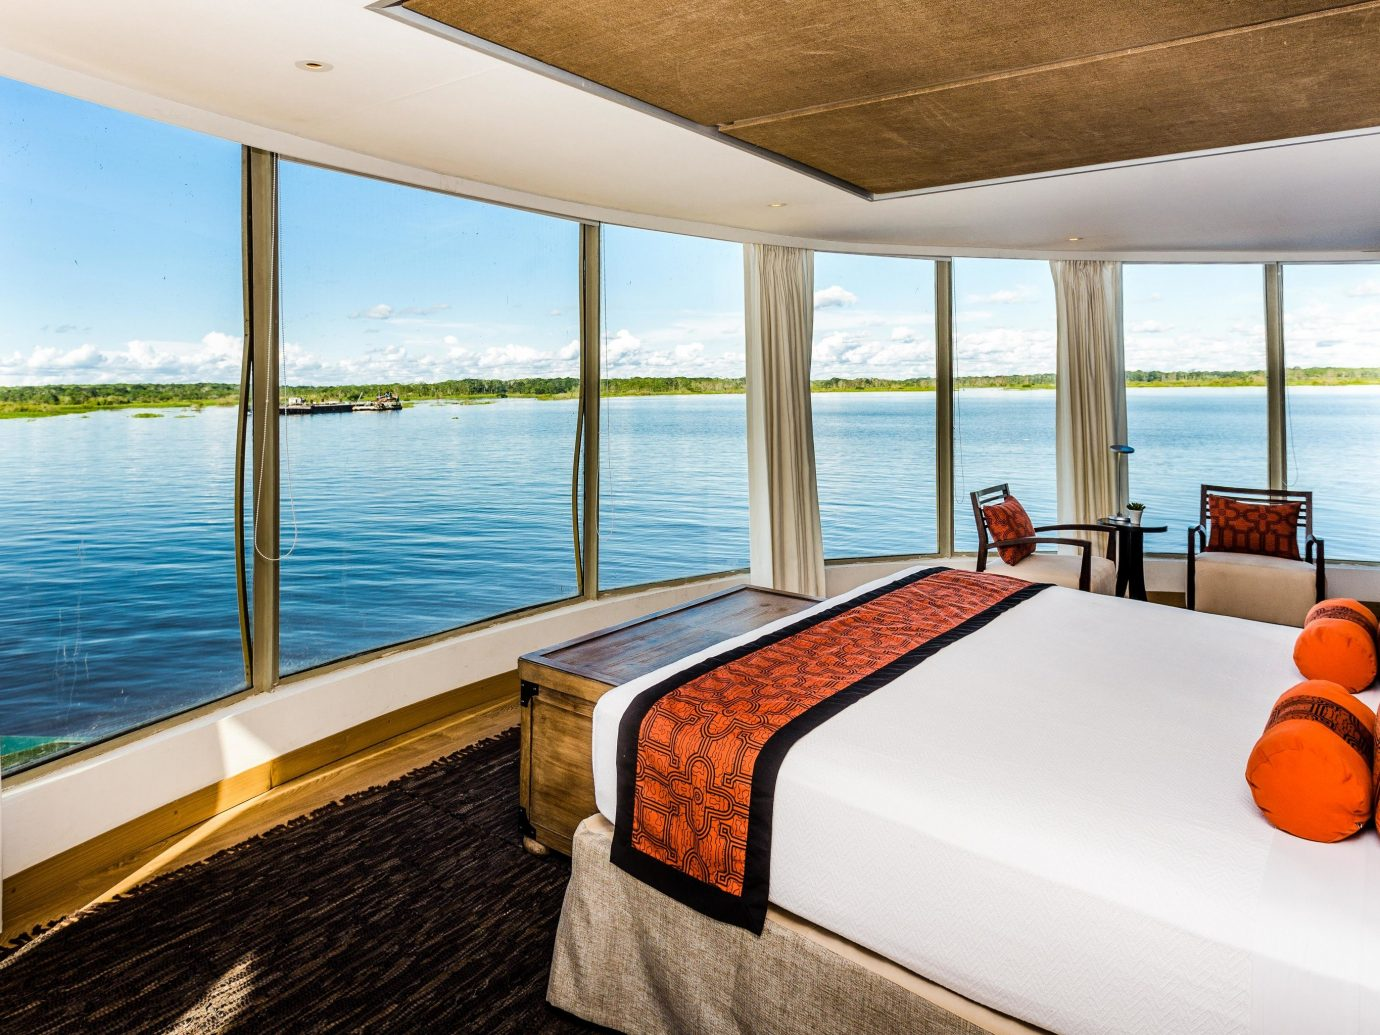 Cruise Travel Luxury Travel Outdoors + Adventure Trip Ideas indoor ceiling window water hotel floor property bed room real estate interior design estate home Suite condominium penthouse apartment wood Bedroom vacation apartment house Resort daylighting Villa furniture overlooking flat several